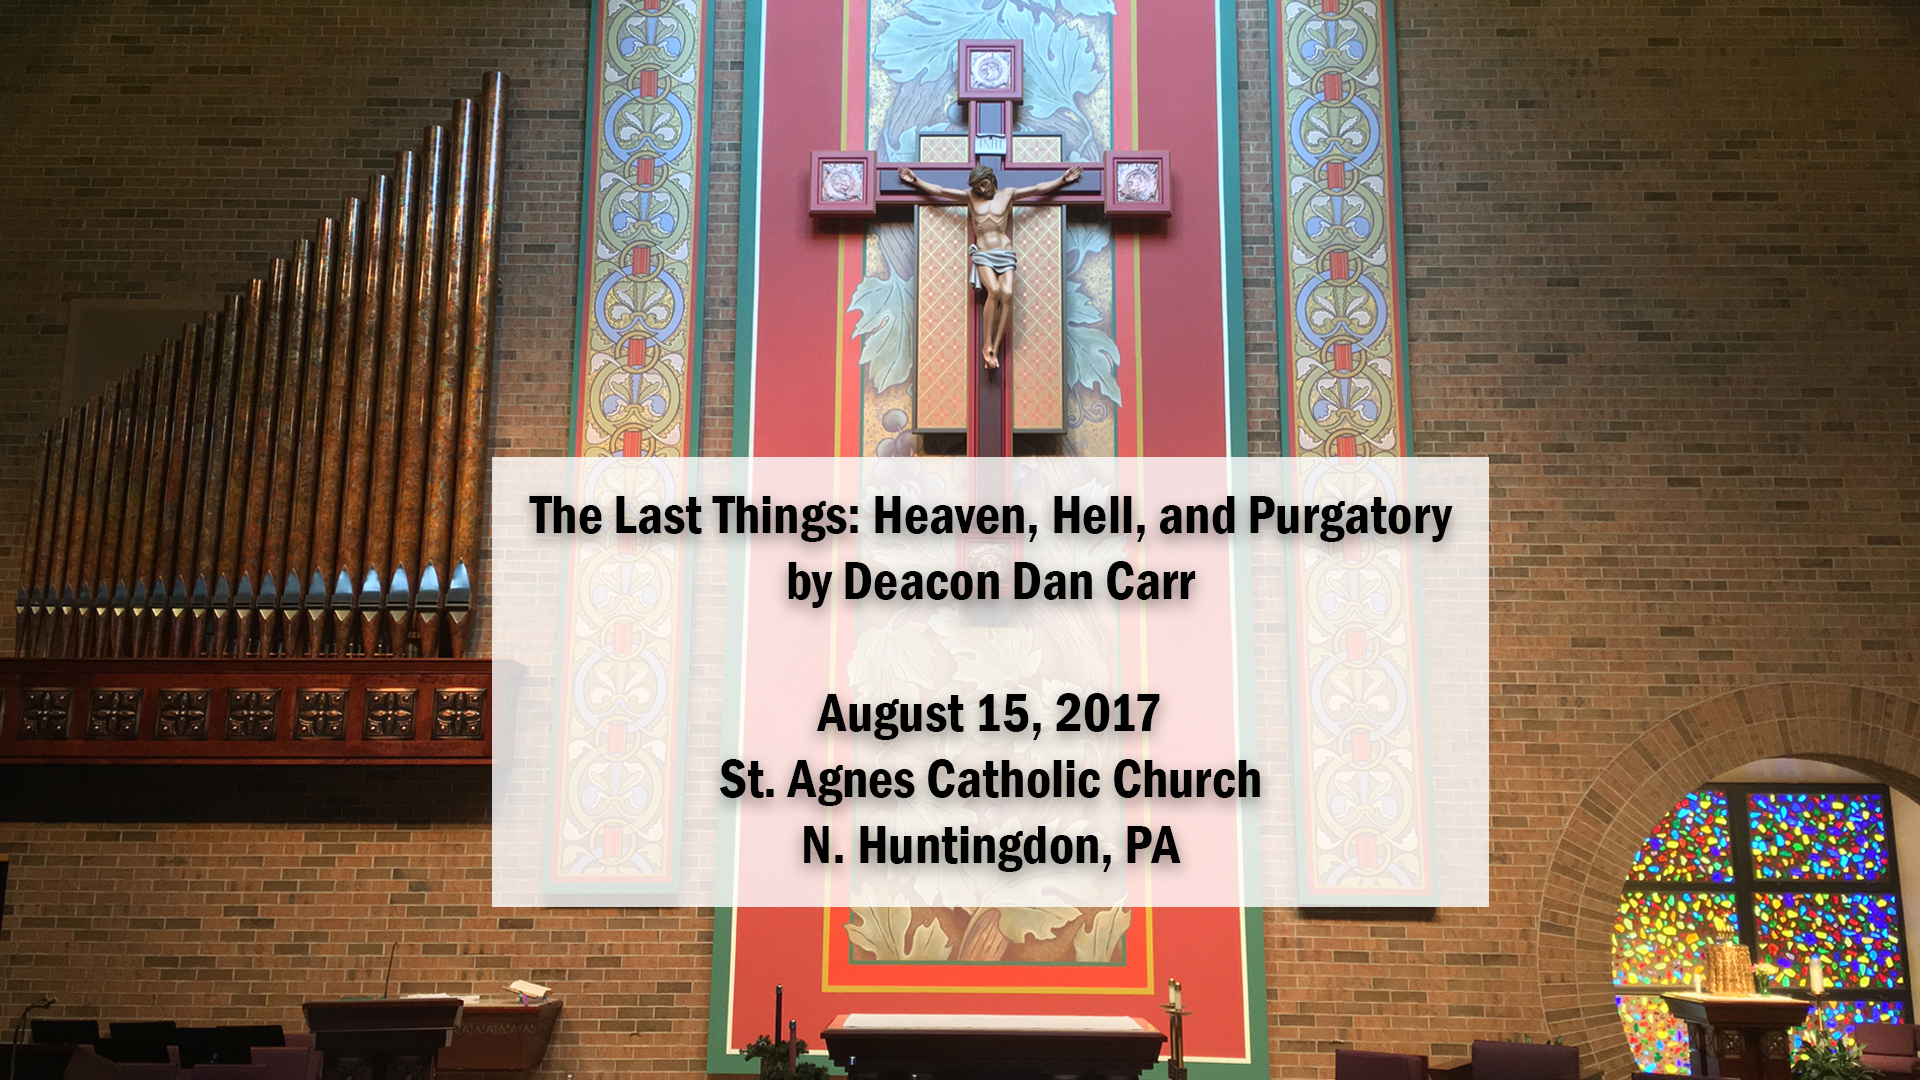 The Last Things: Heaven, Hell and Purgatory